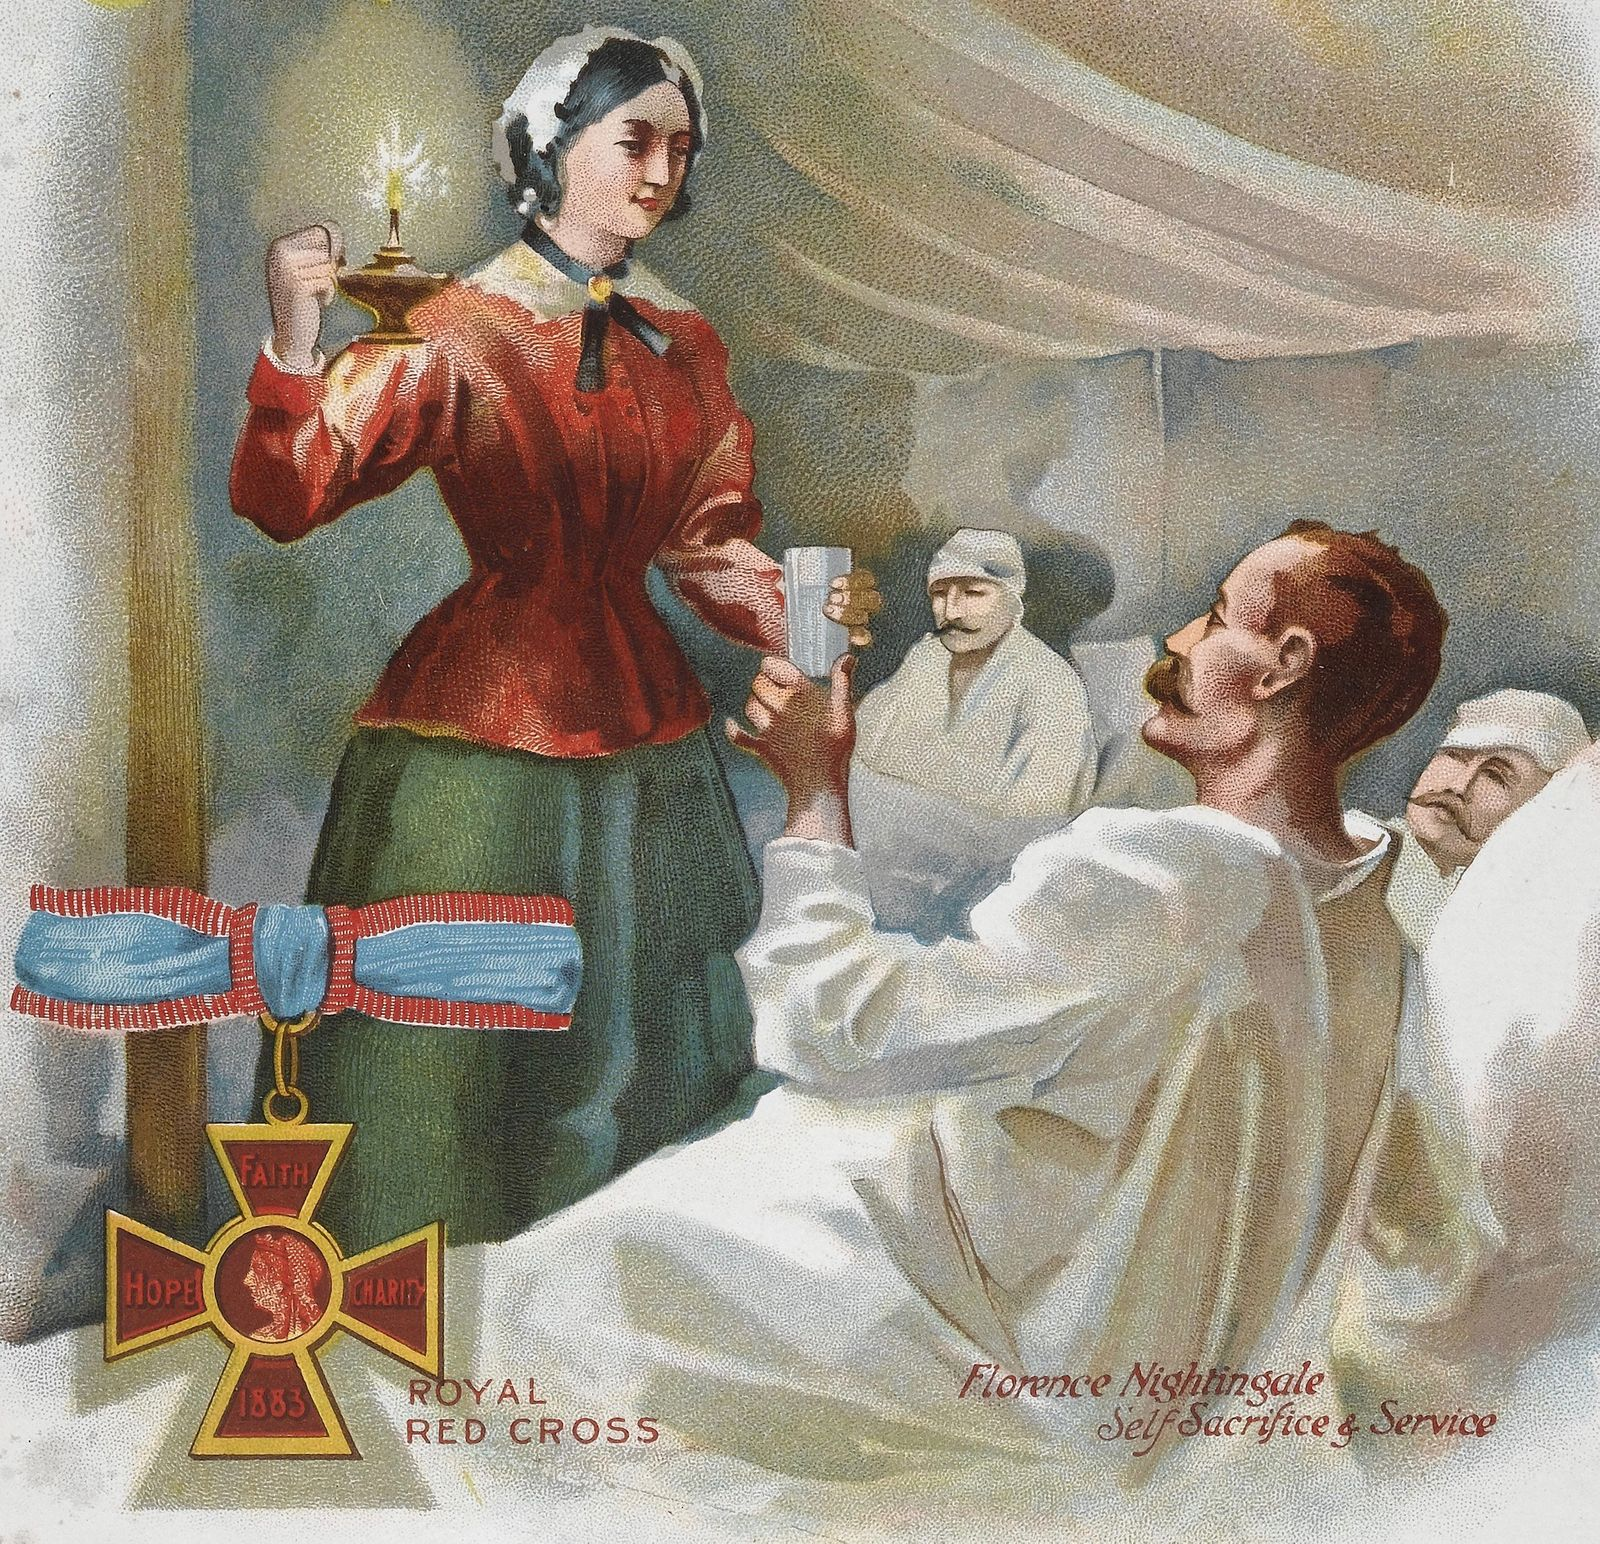 Florence Nightingale attends to Patients